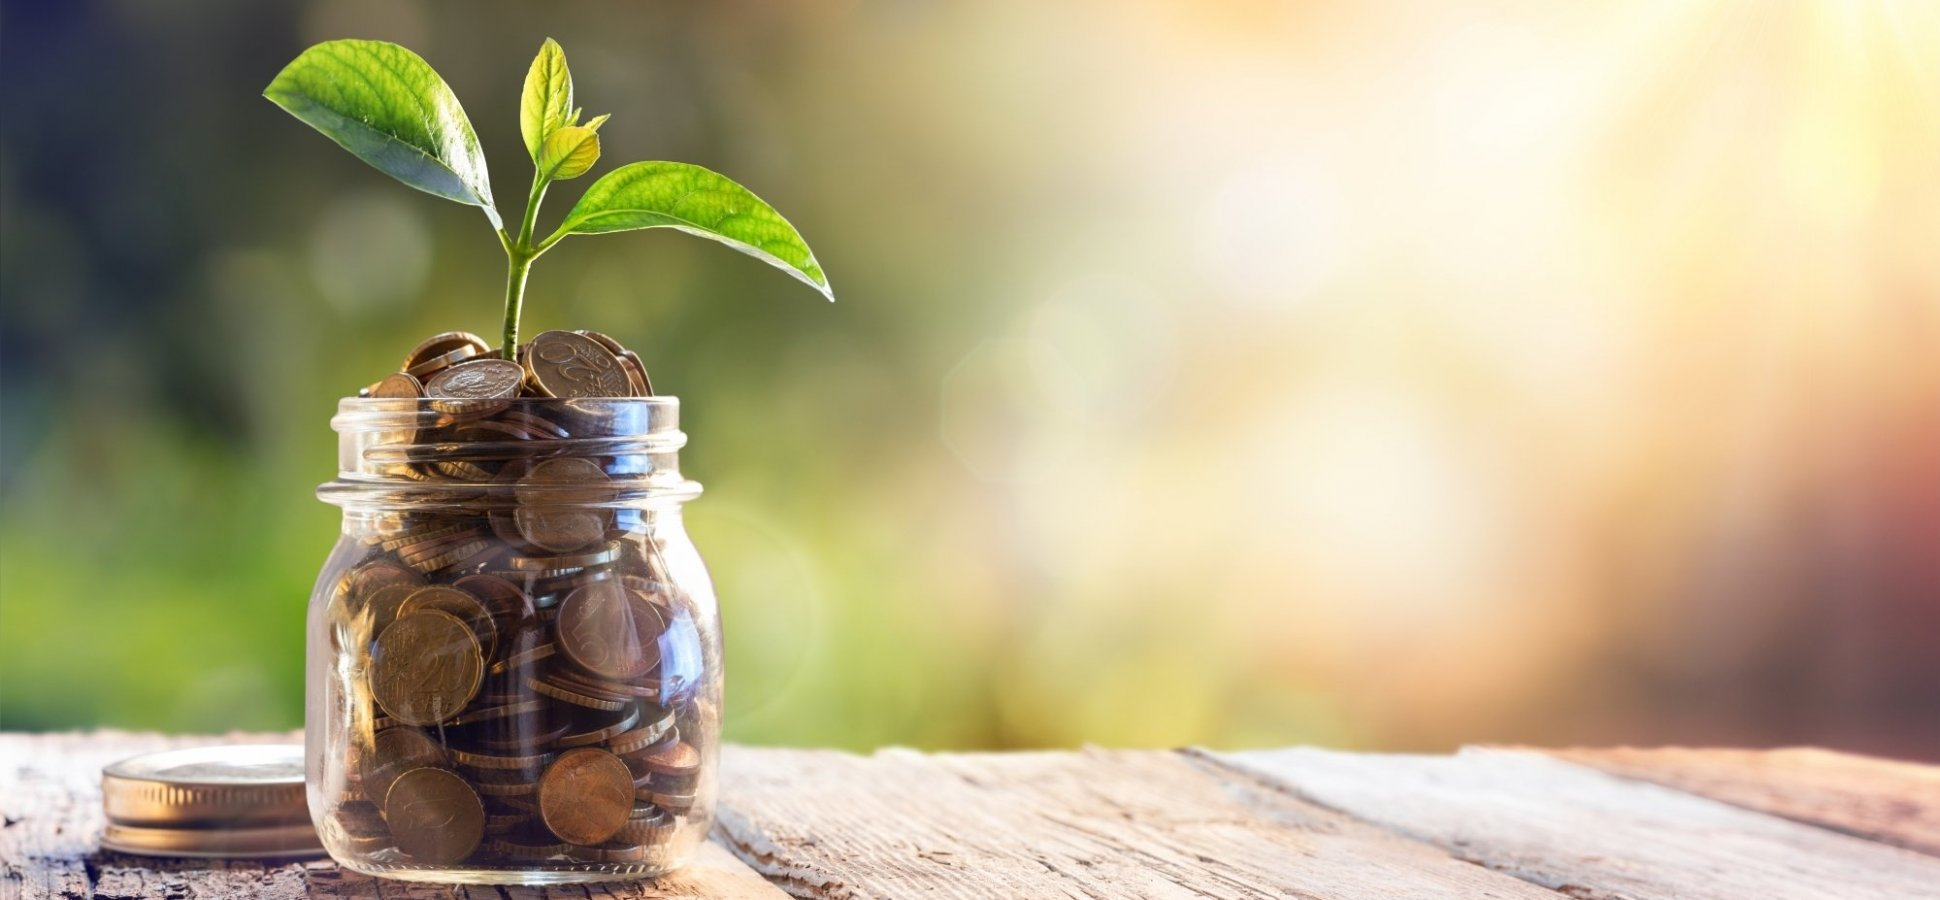 7 Most Powerful Personal Finance Habits You Need to Implement Right Now